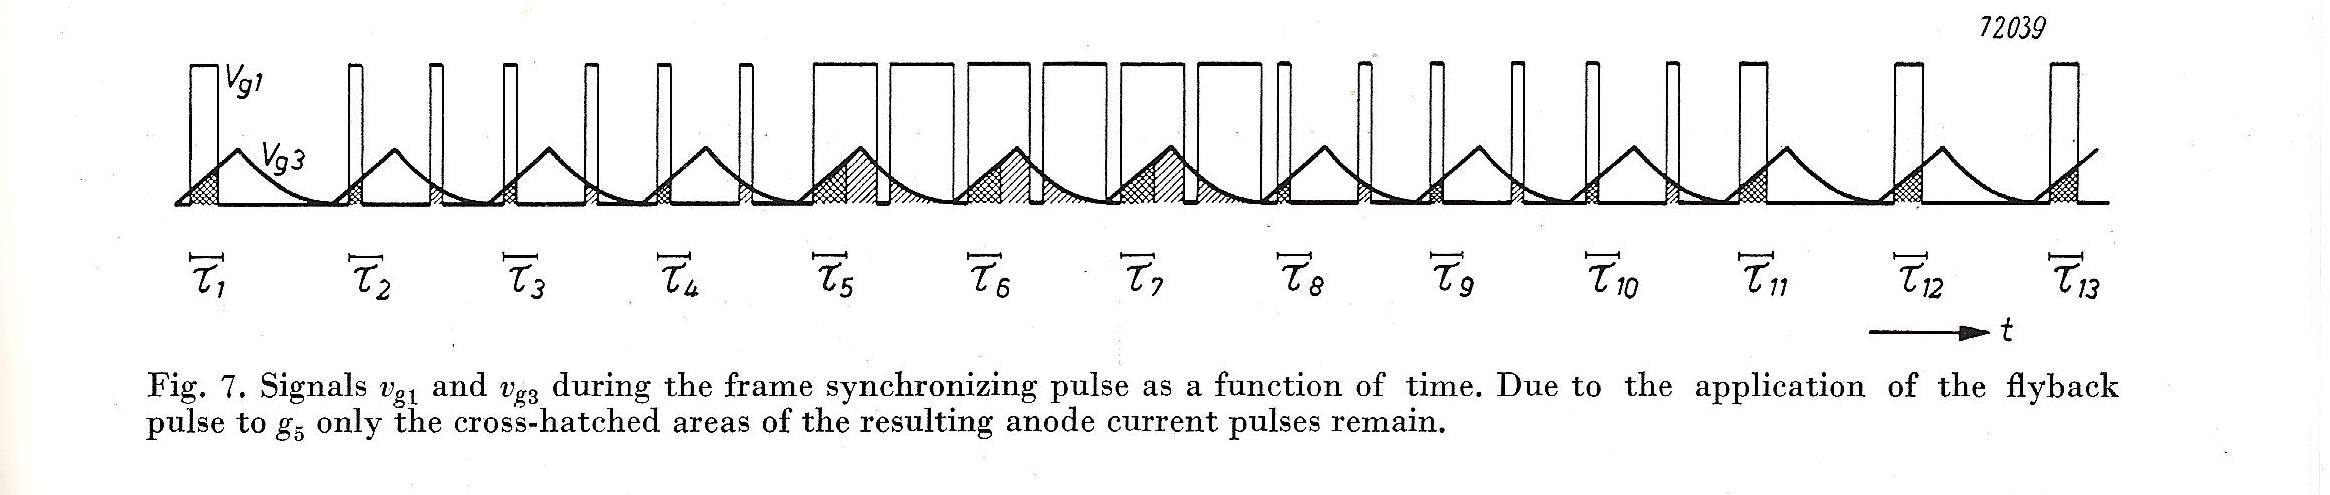 History Of The Eq40 Eq80 Enneode Frequency Detector Pt2 Ratio For Fm Demodulation Although This Application Also Clearly Shows Capabilities As Coincidence Phase Problem Probably Remained It Was